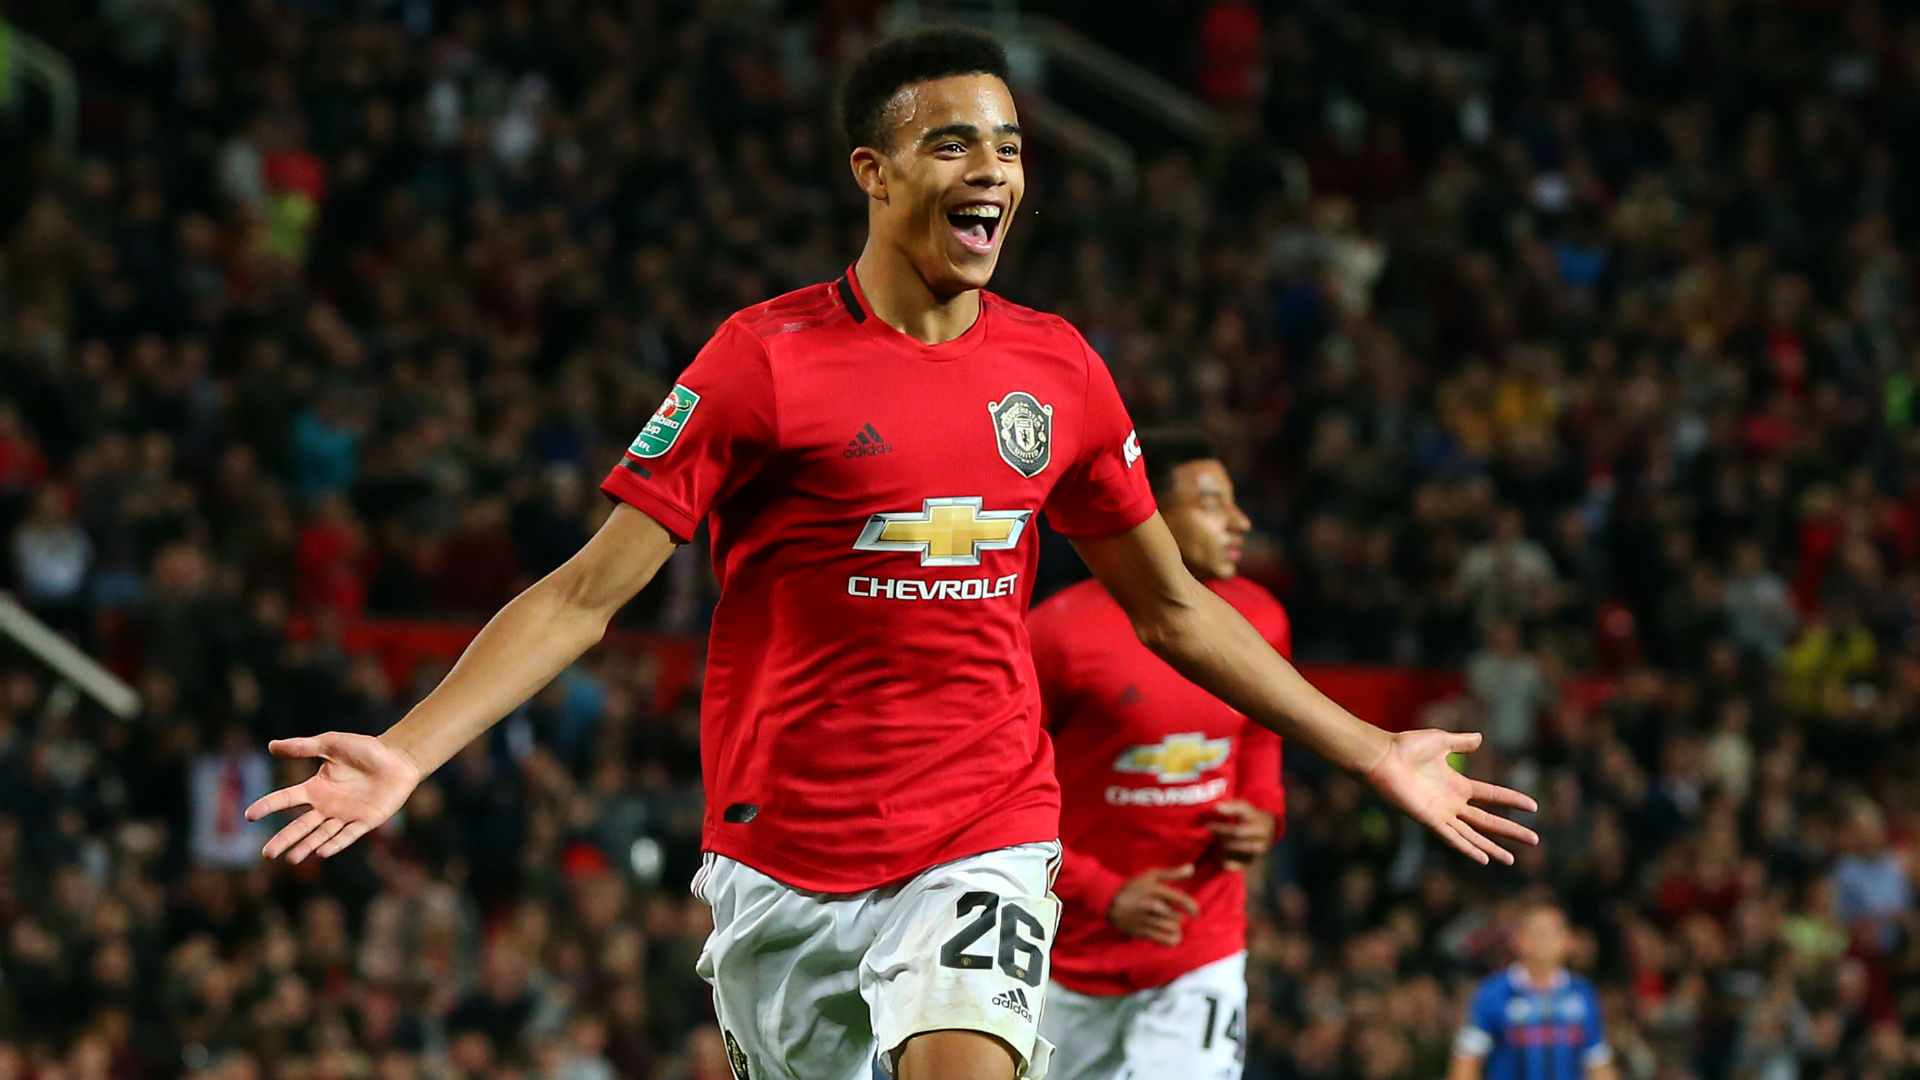 'Greenwood can be our new Van Persie' - Shaw backs Man Utd youngster to emulate Dutch star